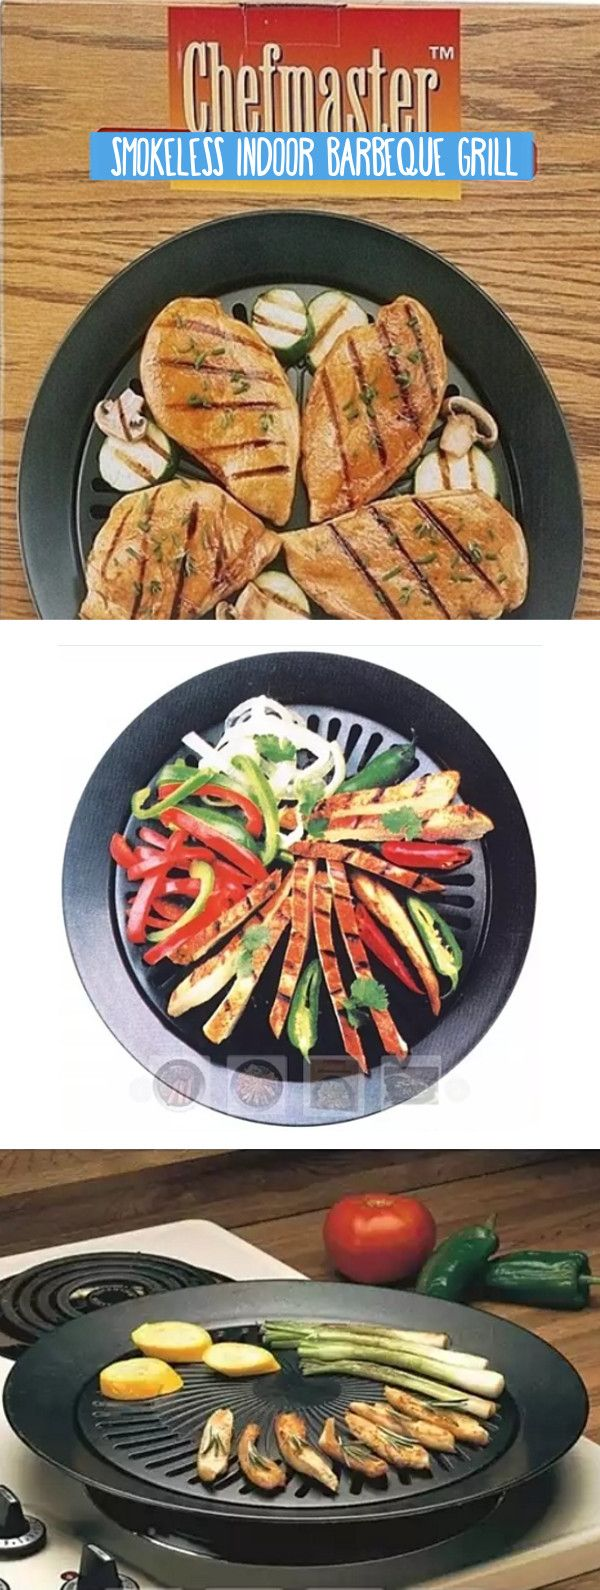 This 13 inch grill with iron plate, works on standard electric, gas or propane stoves. The water-filled outer ring catches fat and juices during cooking, eliminating smoke and splattering. The high quality, non stick surface insures easy clean up. Limited two year warranty. Gift boxed.